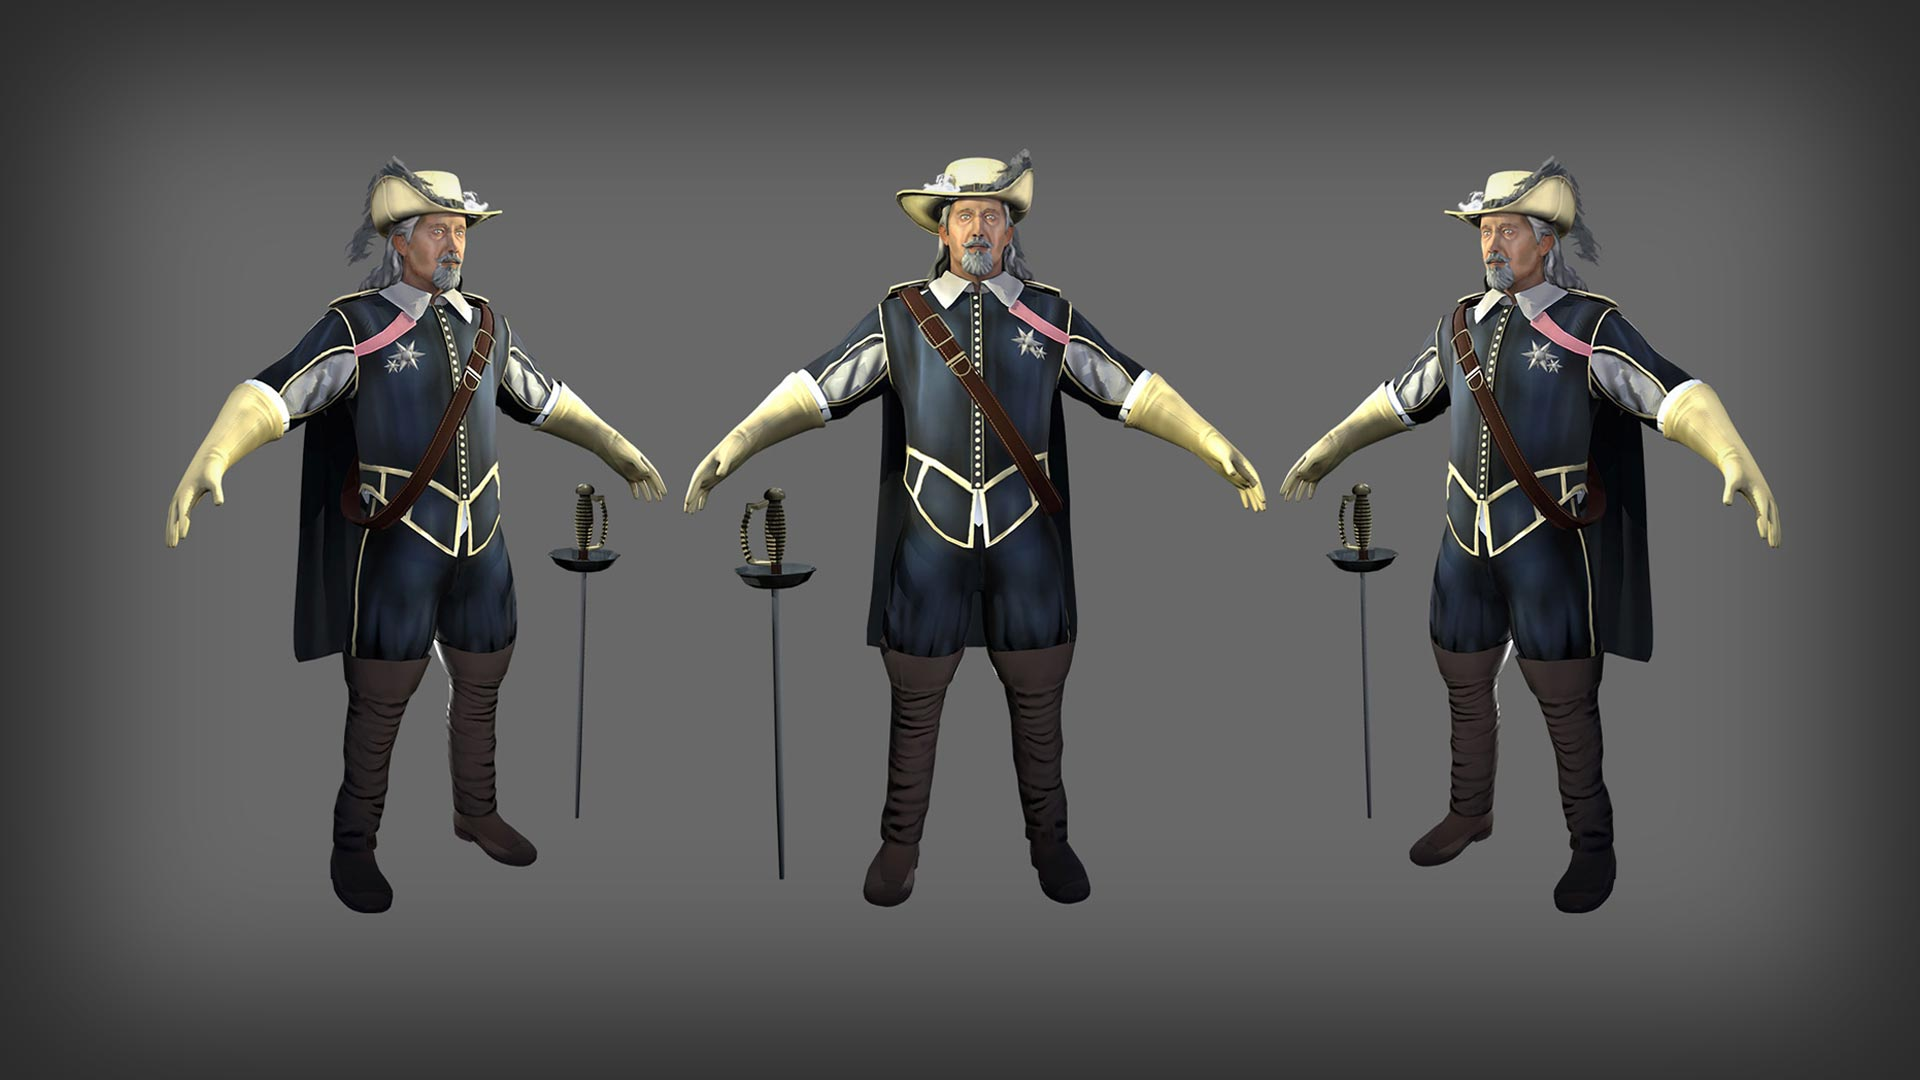 3D Characters for 3D Game Art Outsourcing and External Game Development